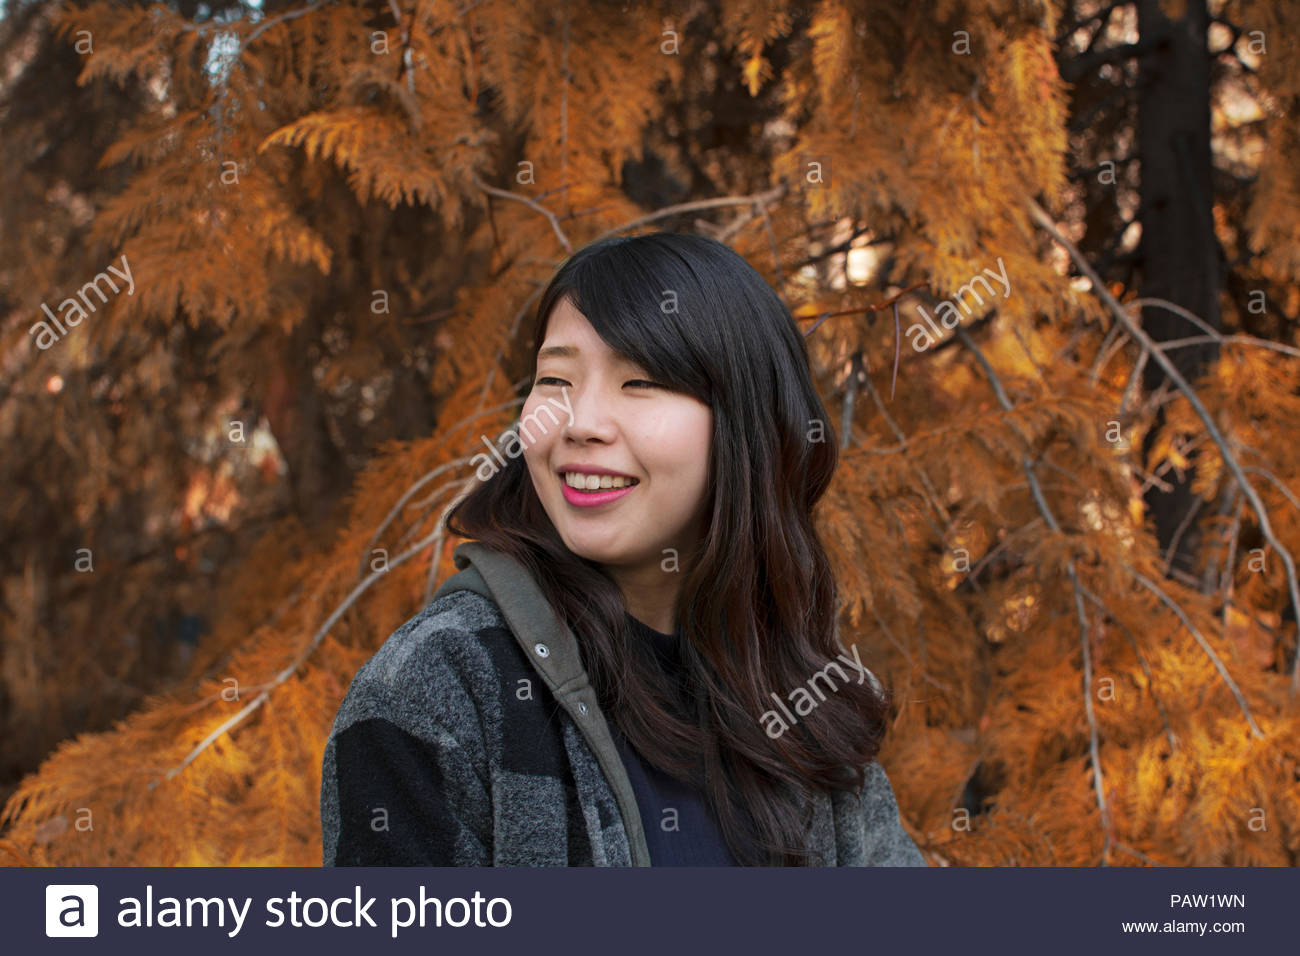 Portrait of young woman in a forest in autumn - Stock Image